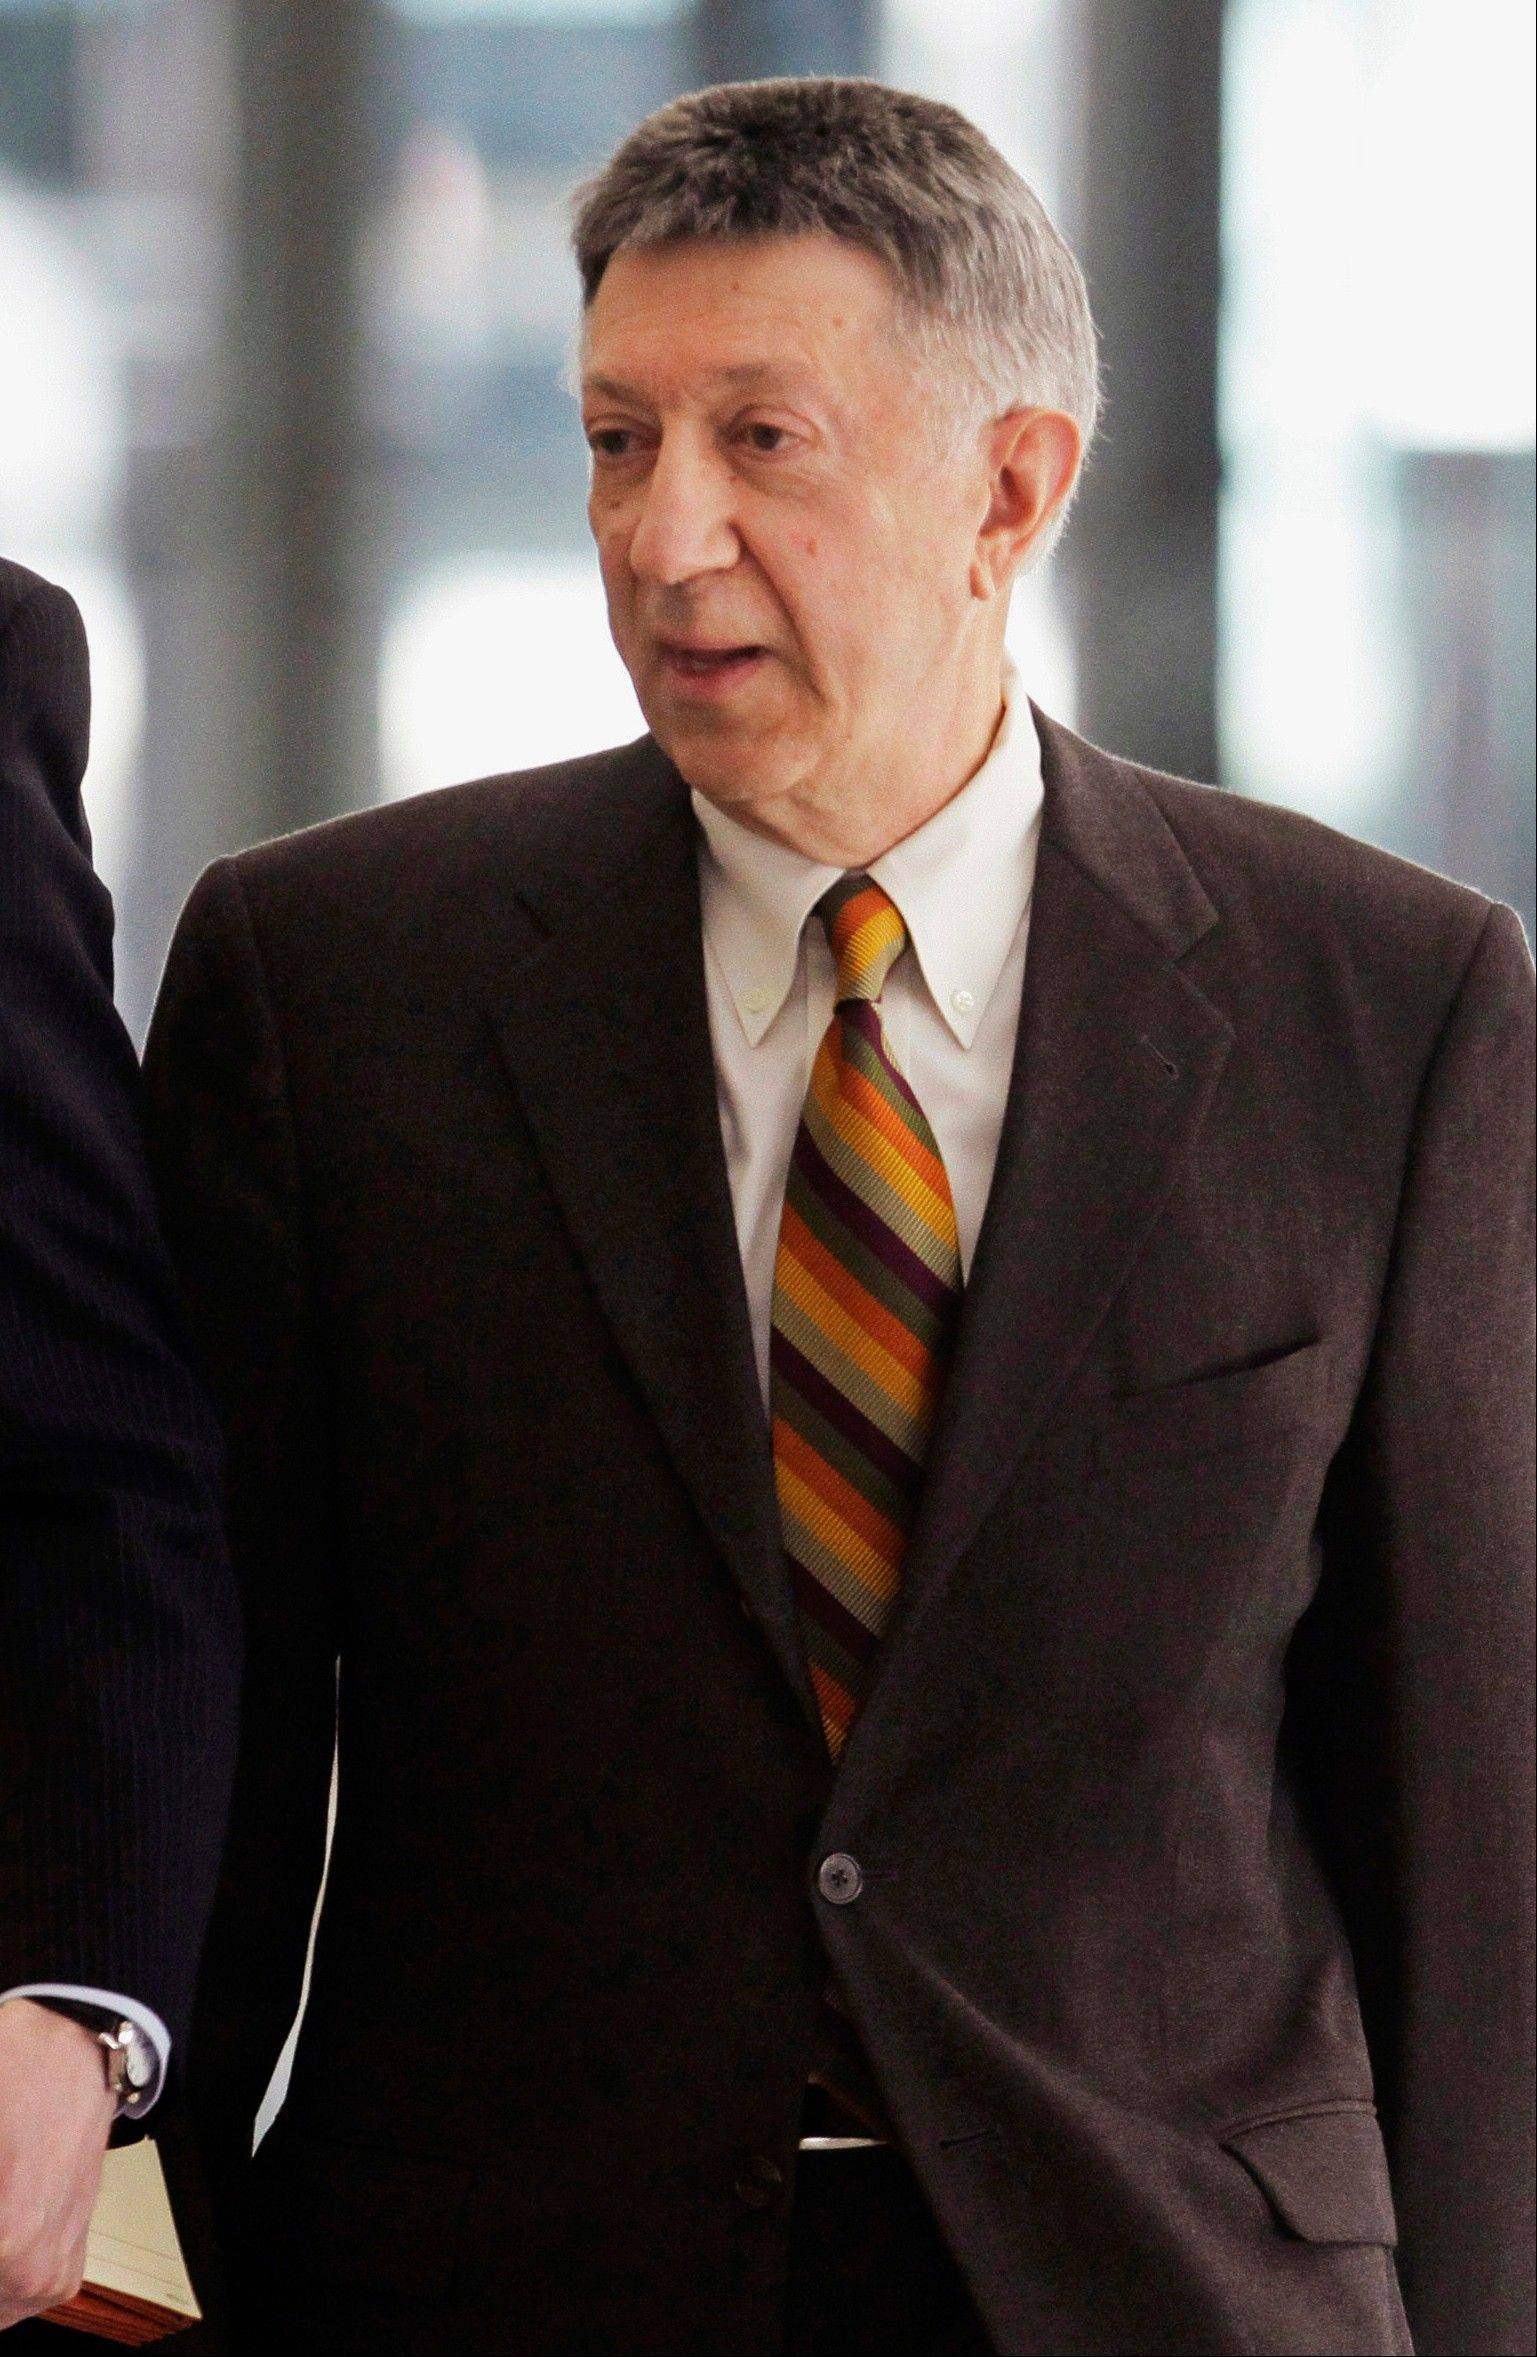 Jury selection is scheduled to begin Monday for William Cellini, 76, who is charged with conspiring to shake down a Hollywood producer for a $1.5 million contribution to then Gov. Rod Blagojevich�s campaign.